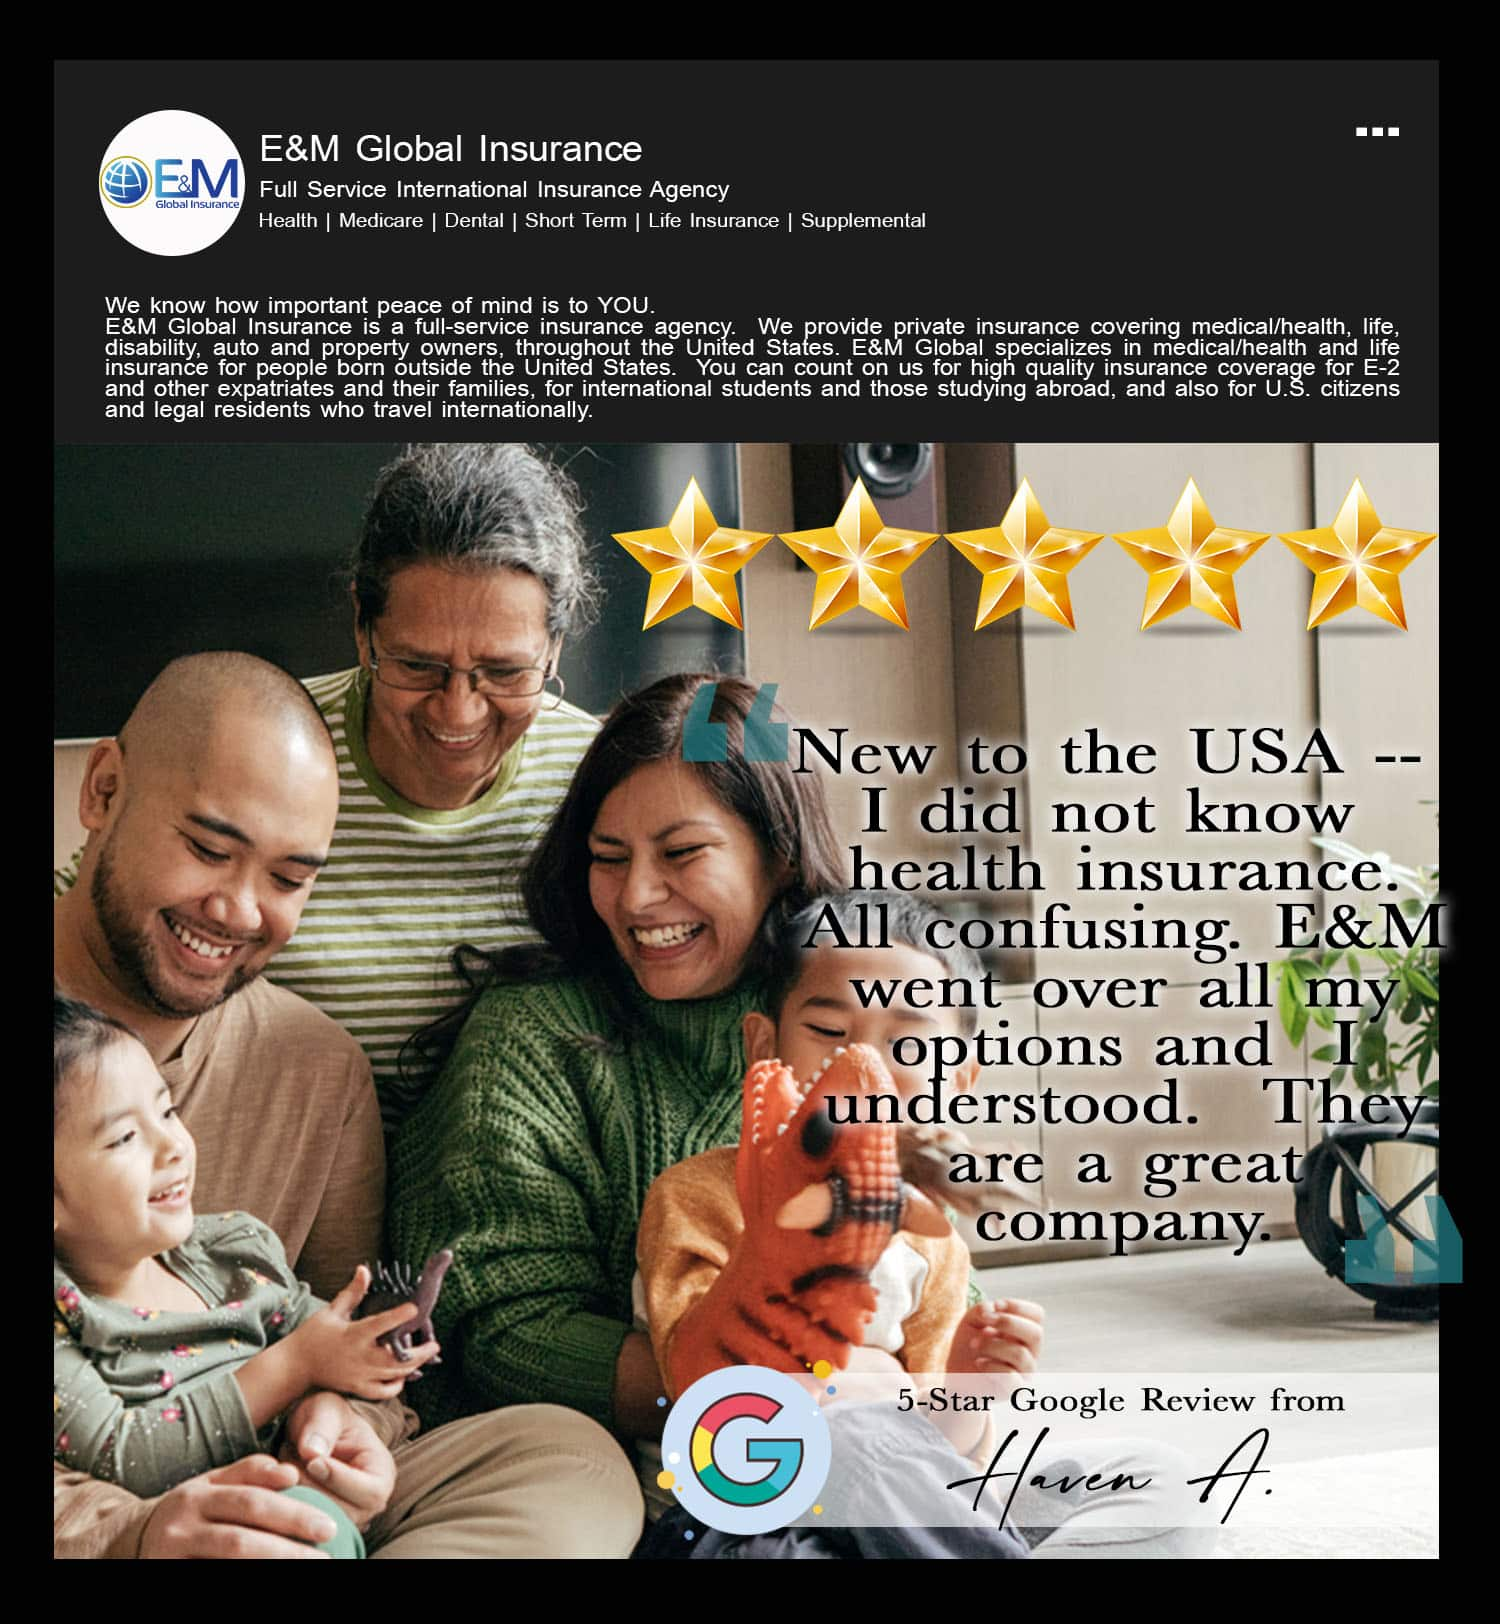 5-Star Google Reviews